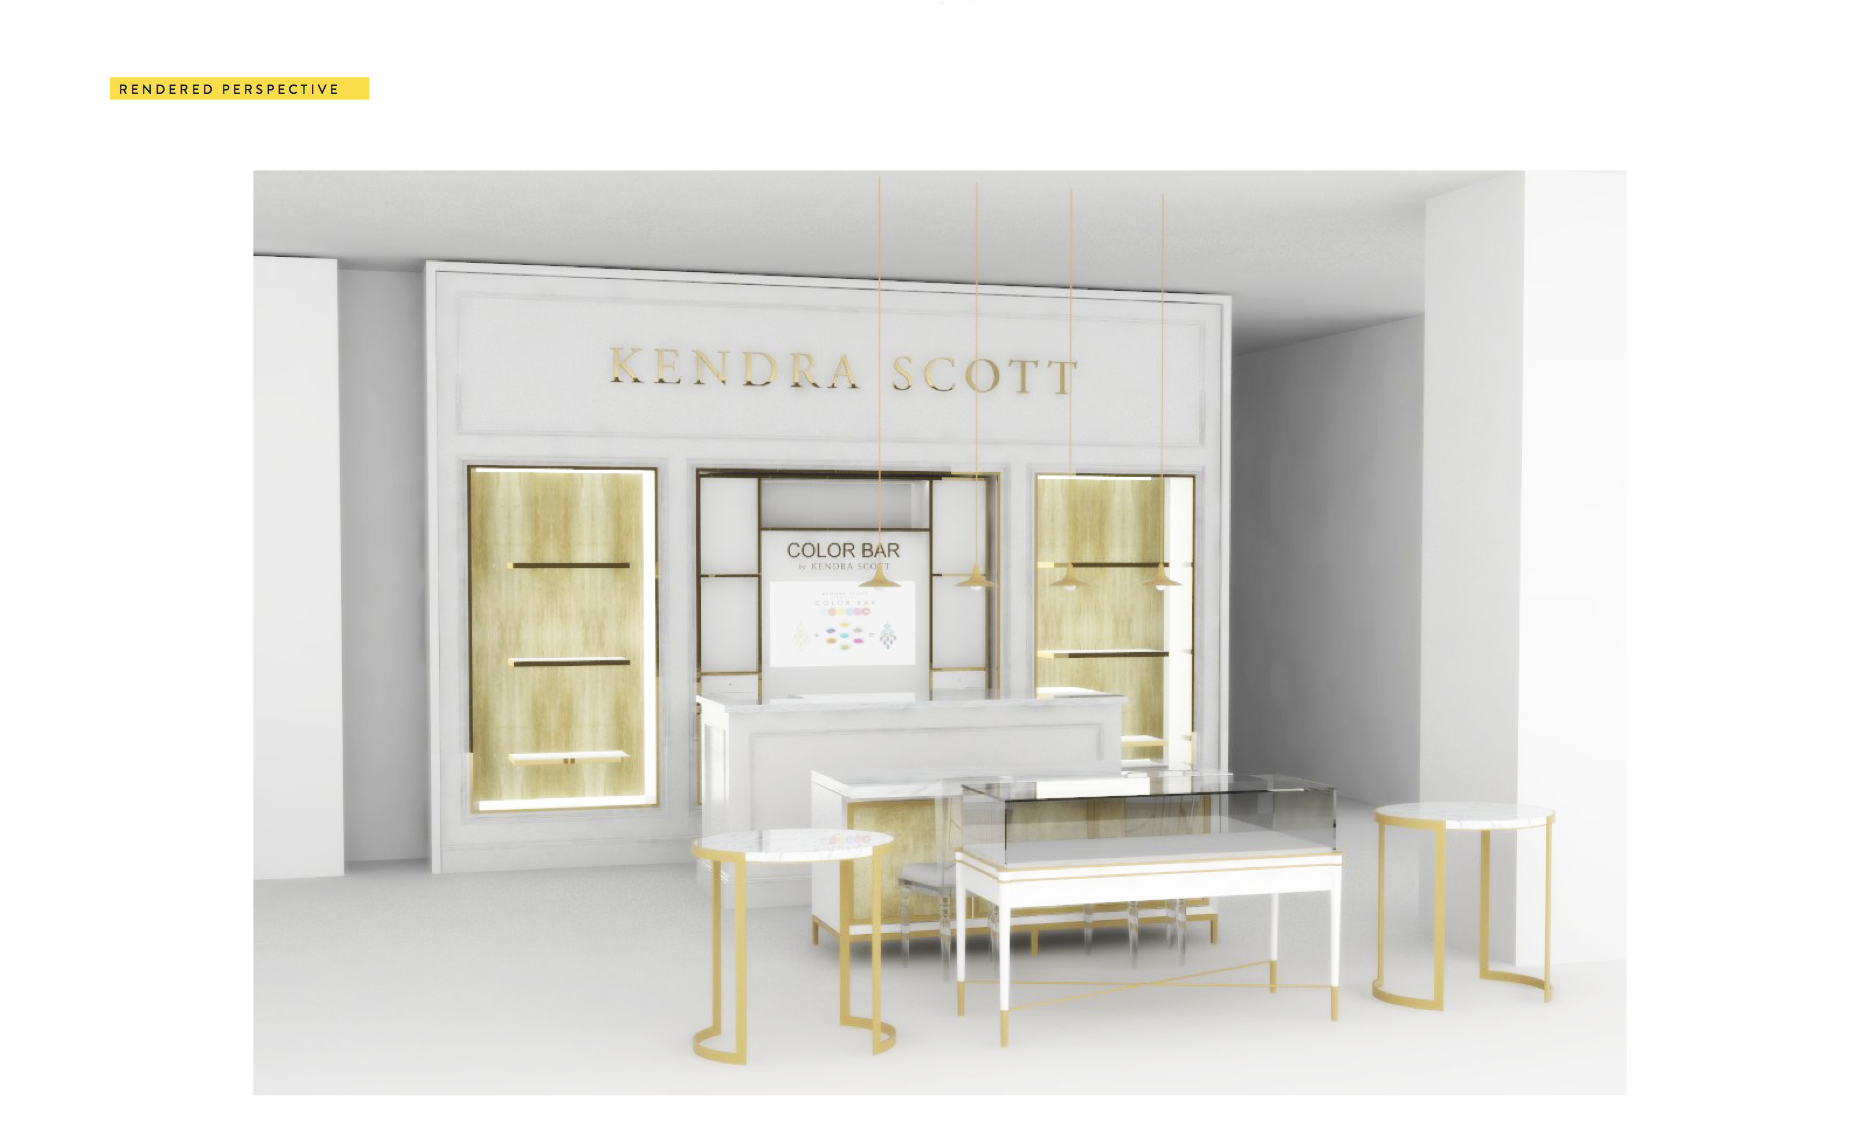 A rendering of Kendra Scott's shop-in-shop at Selfridges